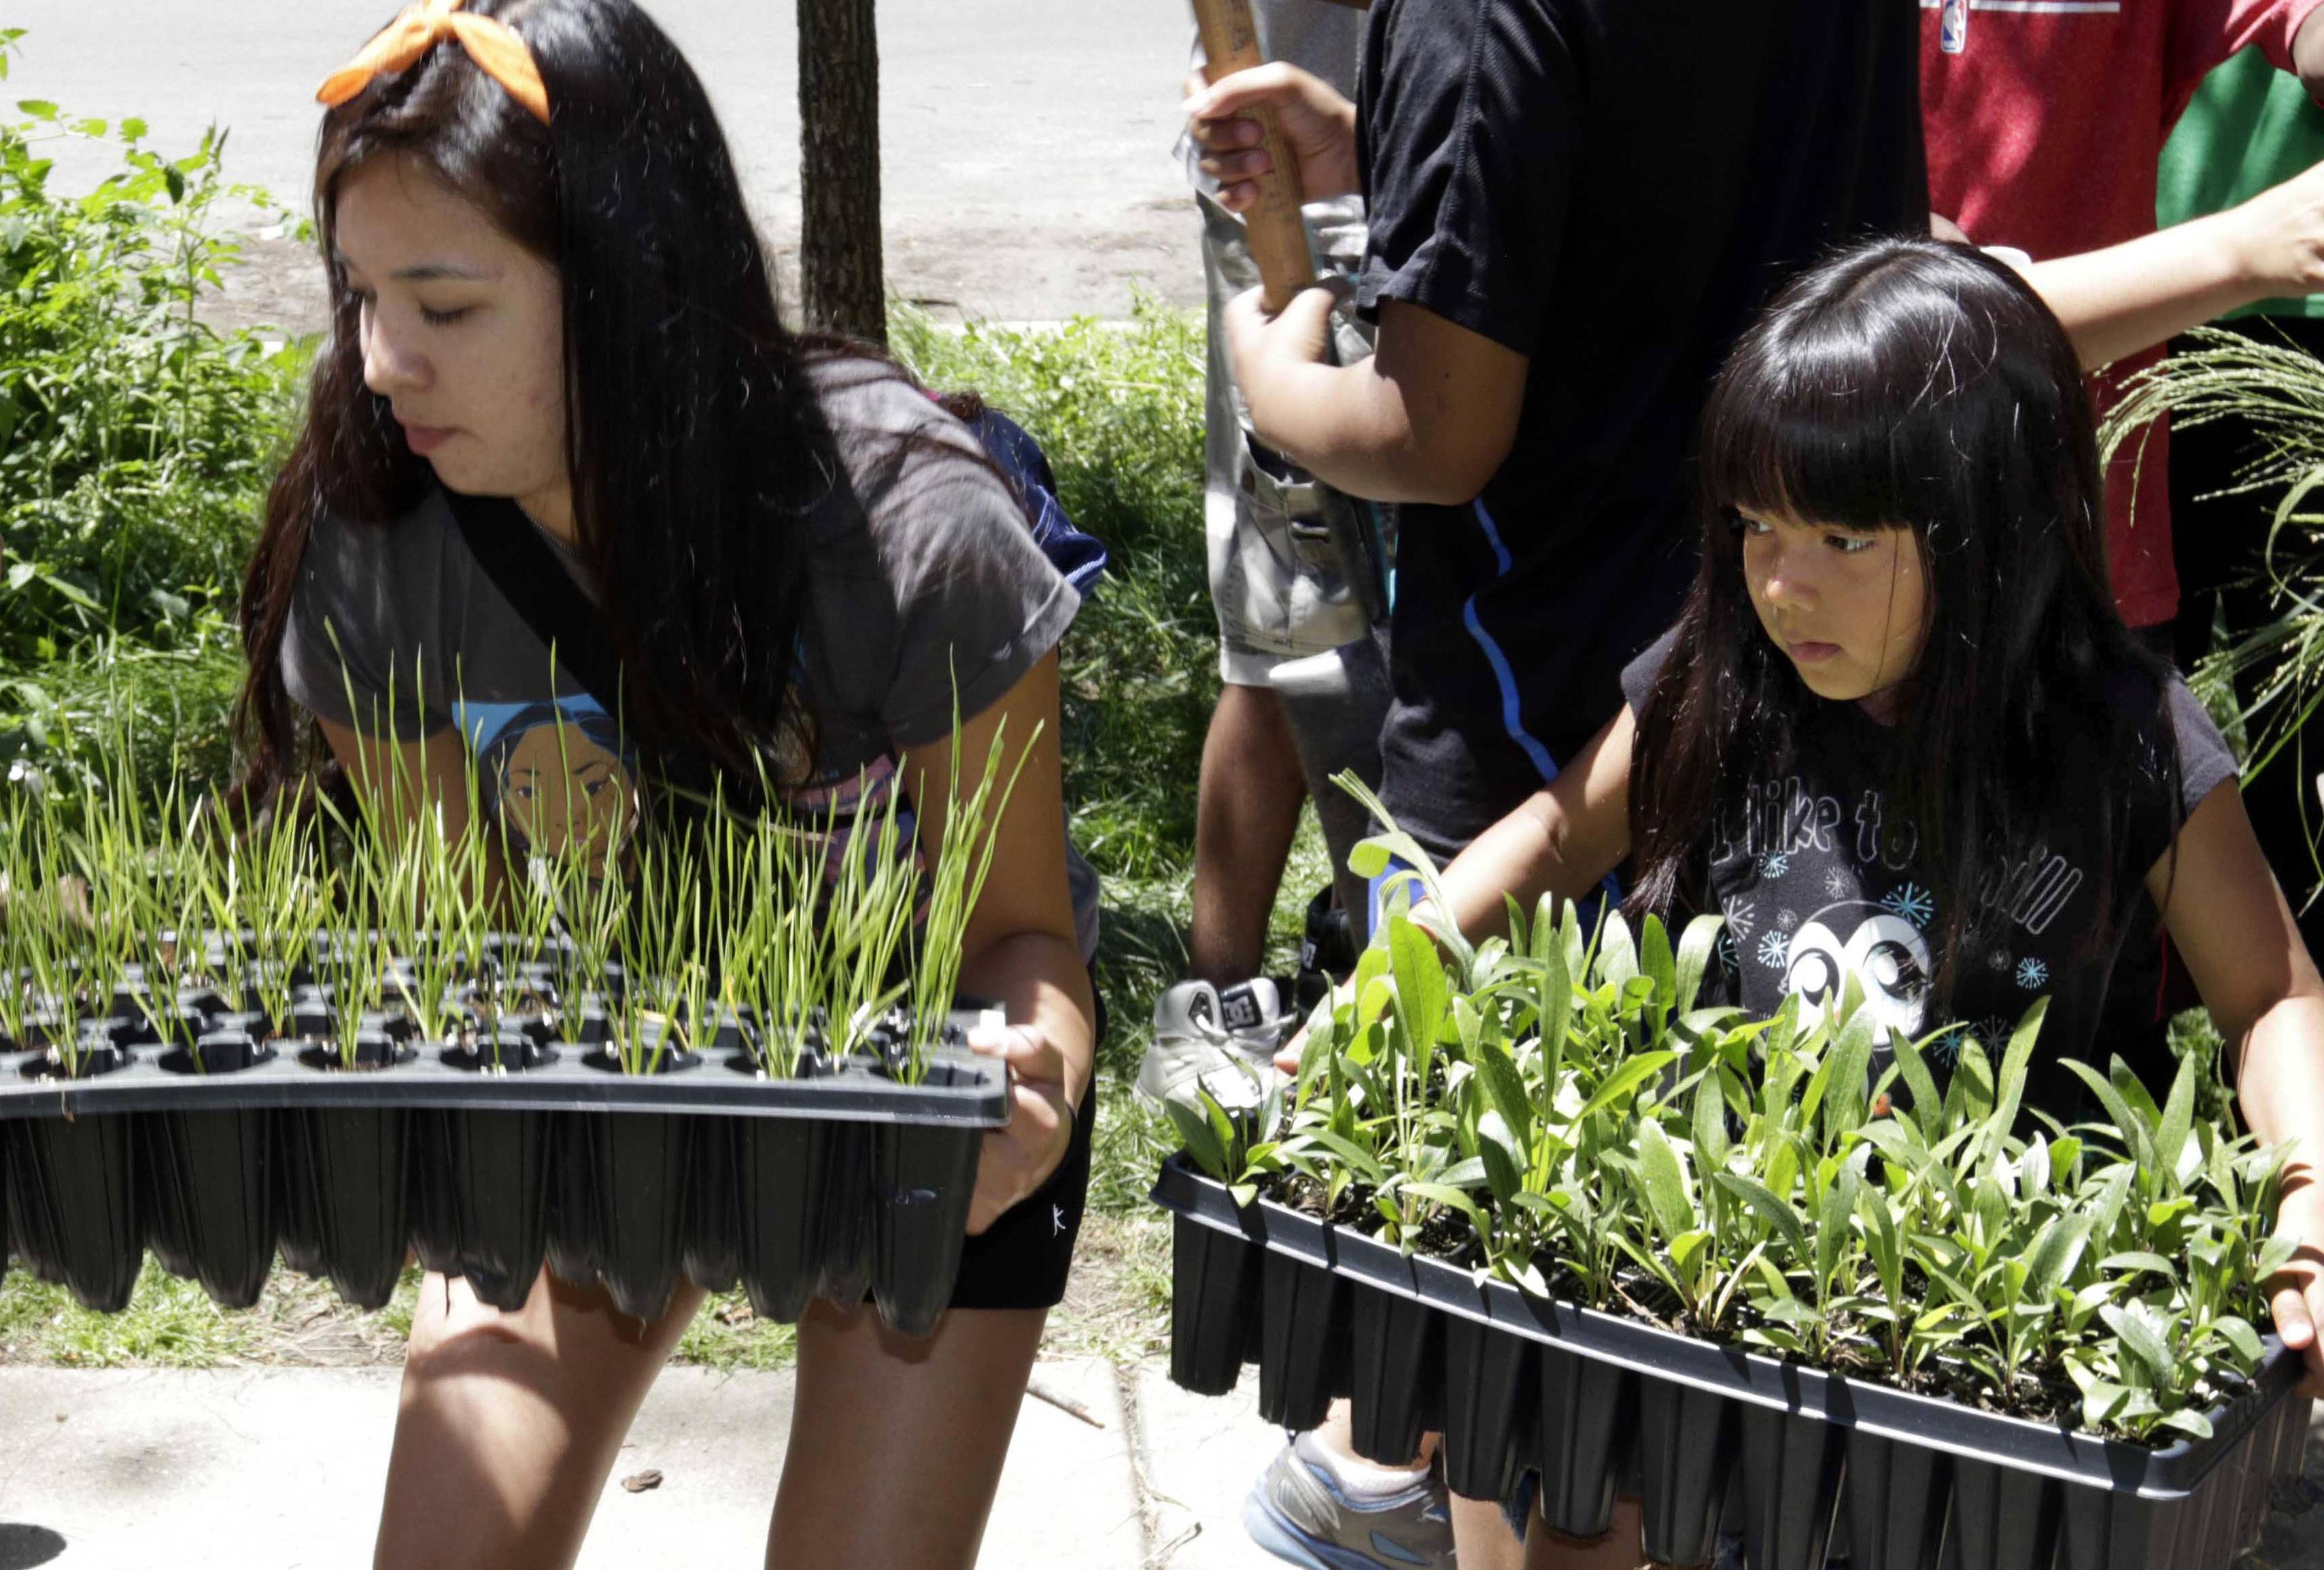 In this July 10 photo, Lilah White, left, and Natalie Cree Arguijo carry plants during a gardening exercise with the American Indian Center in Chicago. The center is using gardens to teach urban Native American youth about the importance of their connection to the land.